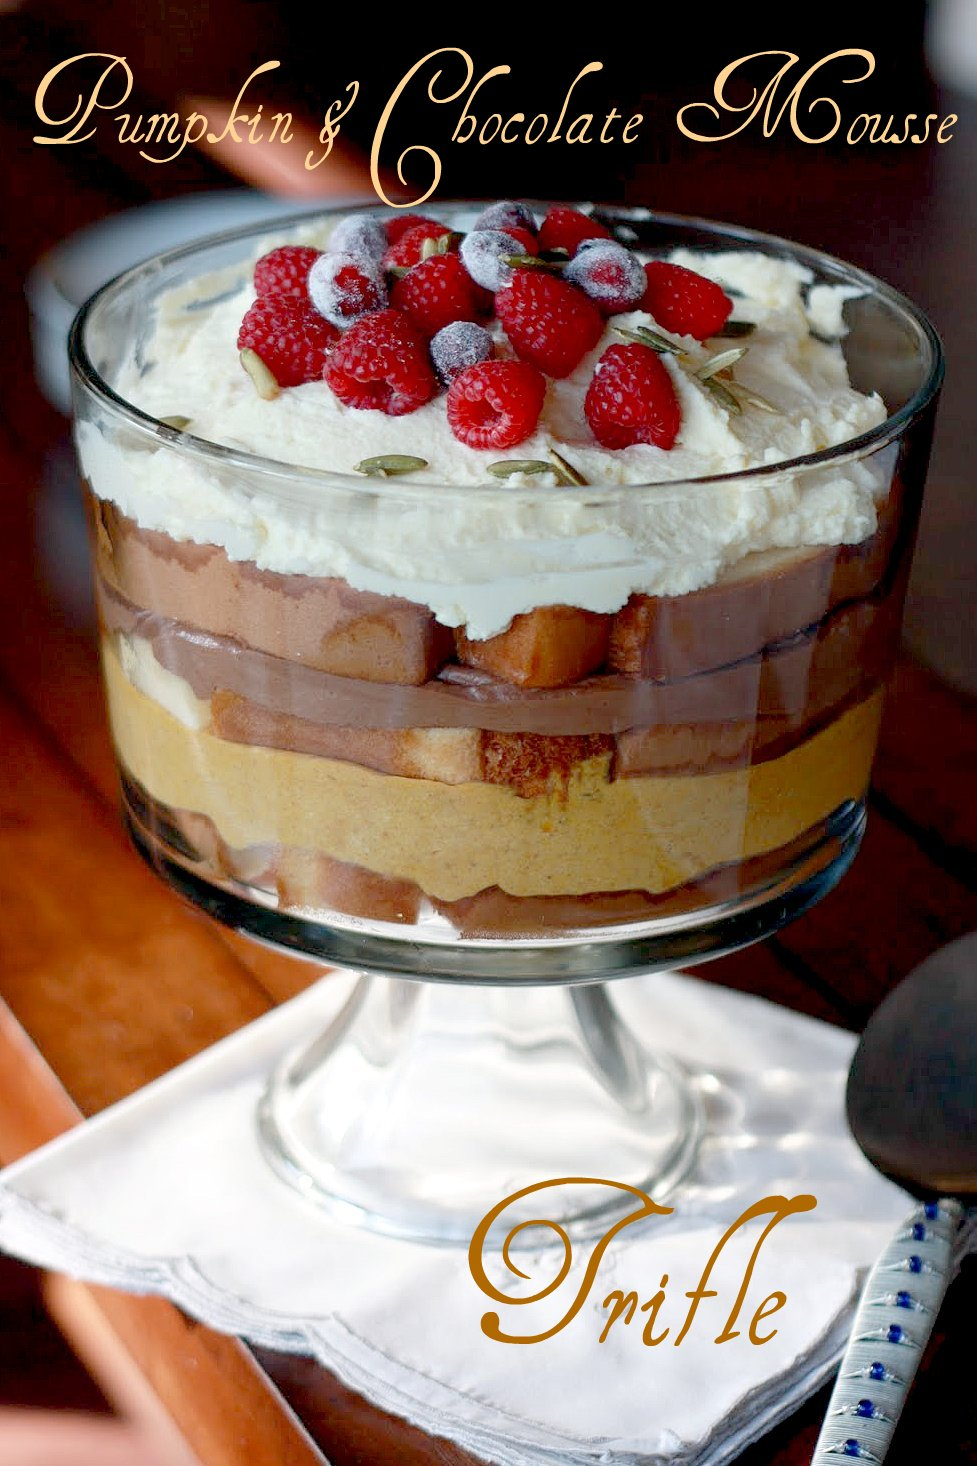 Modern Vintage Coastal...: Pumpkin and chocolate mousse trifle...